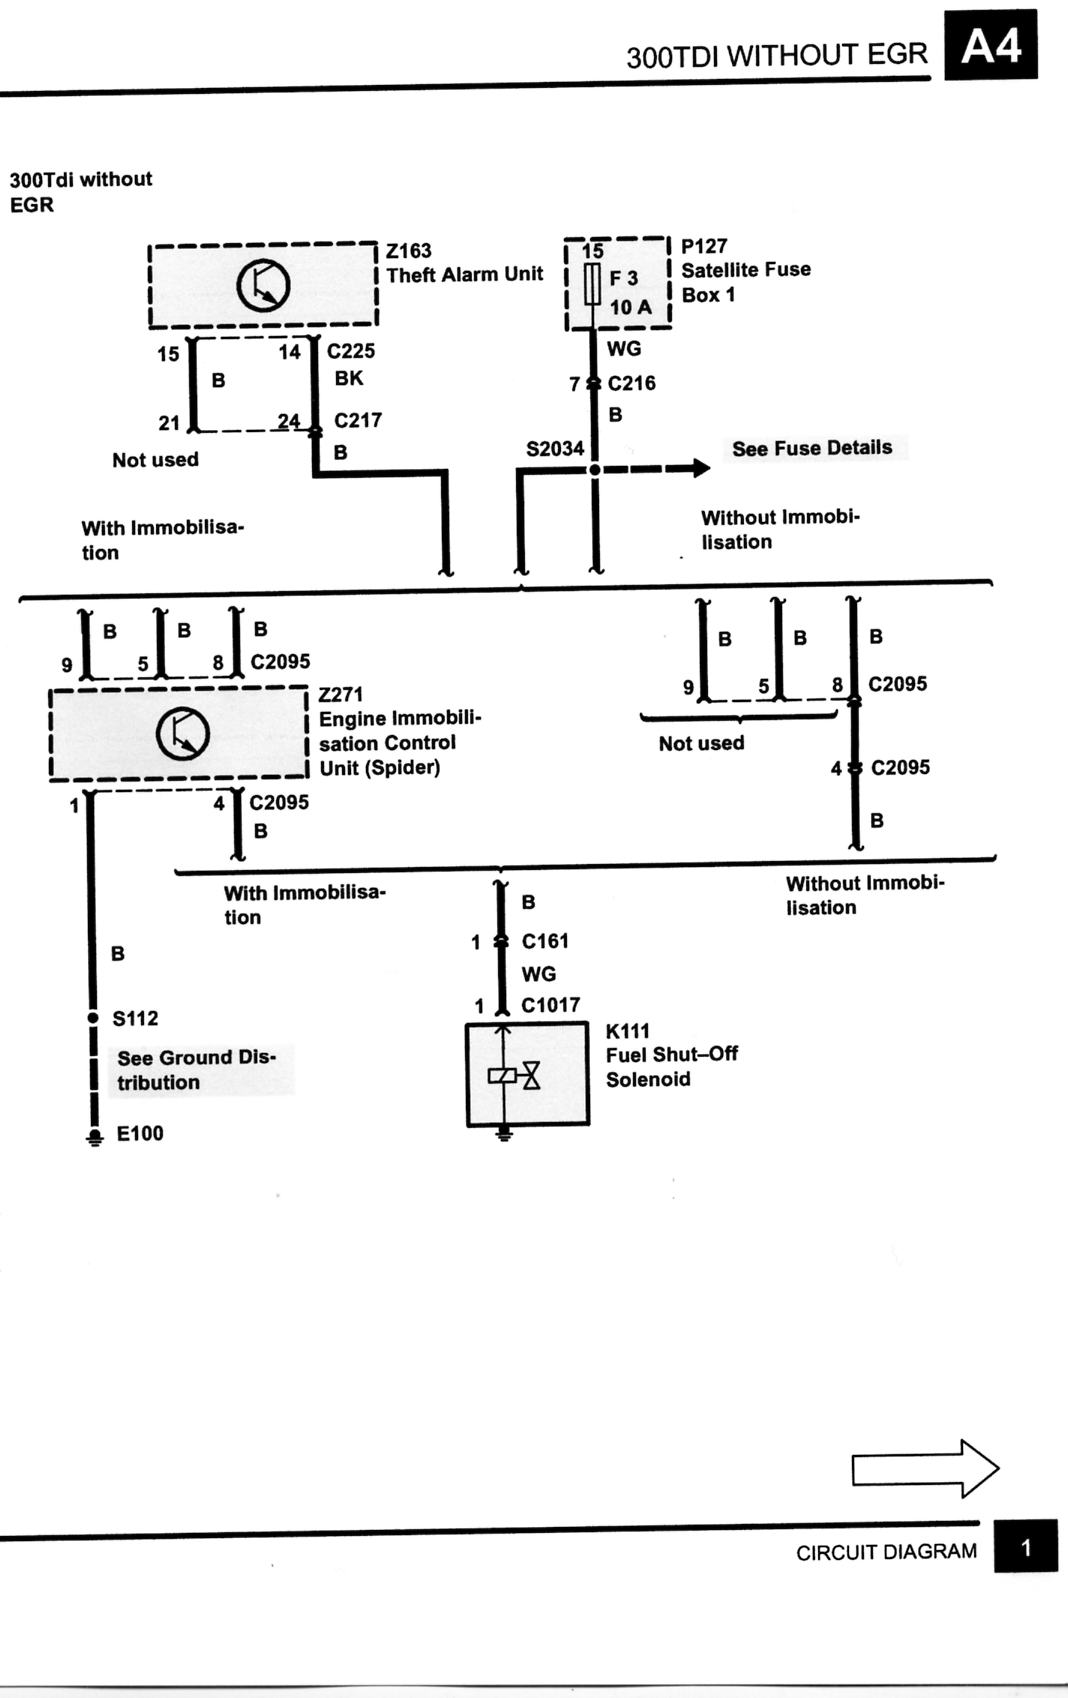 Land Rover Discovery 300tdi Wiring Diagram Explore Series 1 Stereo Stop Solenoid 3 Wire Version International Forum Lr4x4 The Rh Forums Com